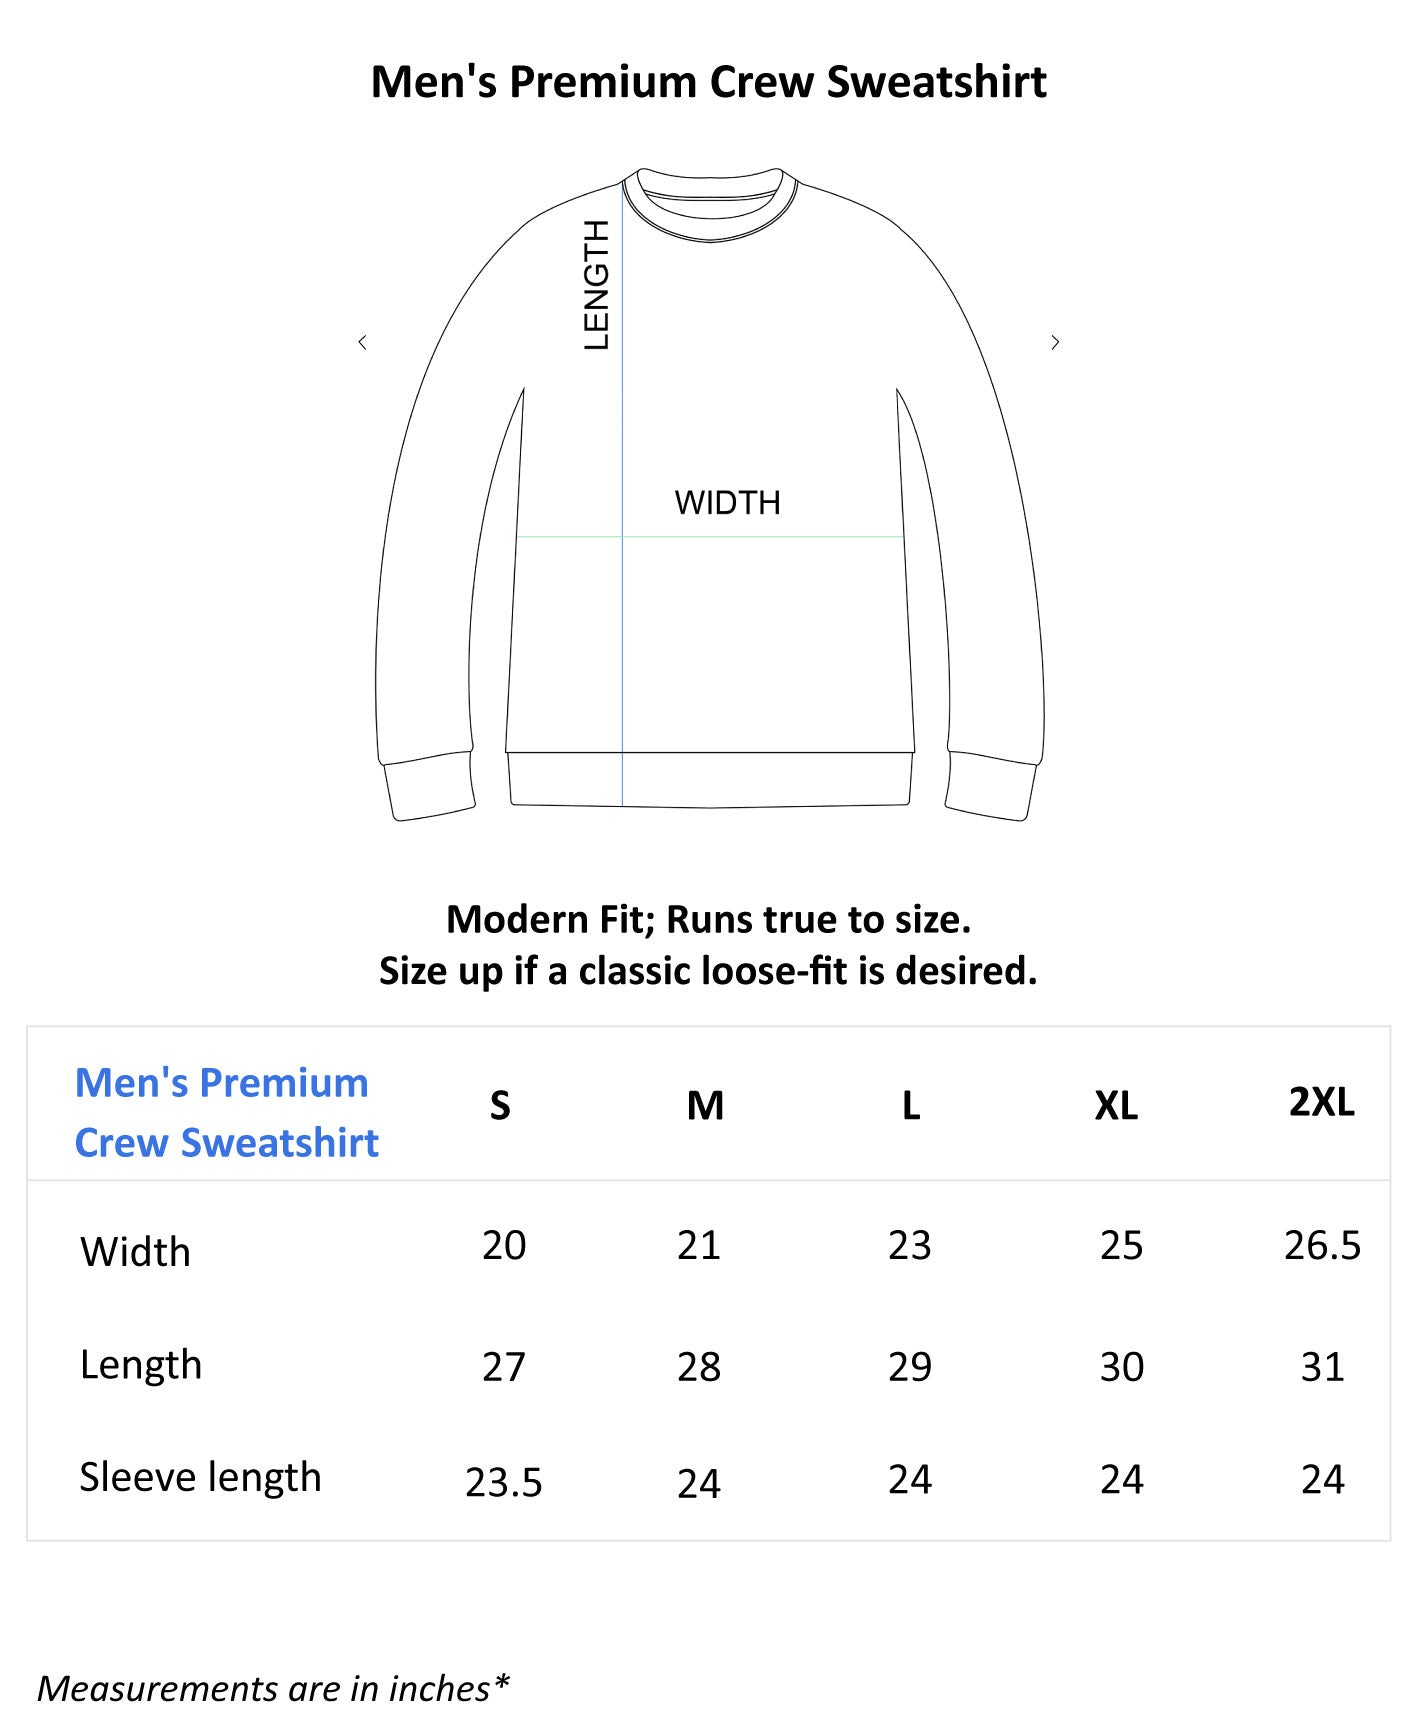 Men's Premium Crew Sweatshirt_Size guide